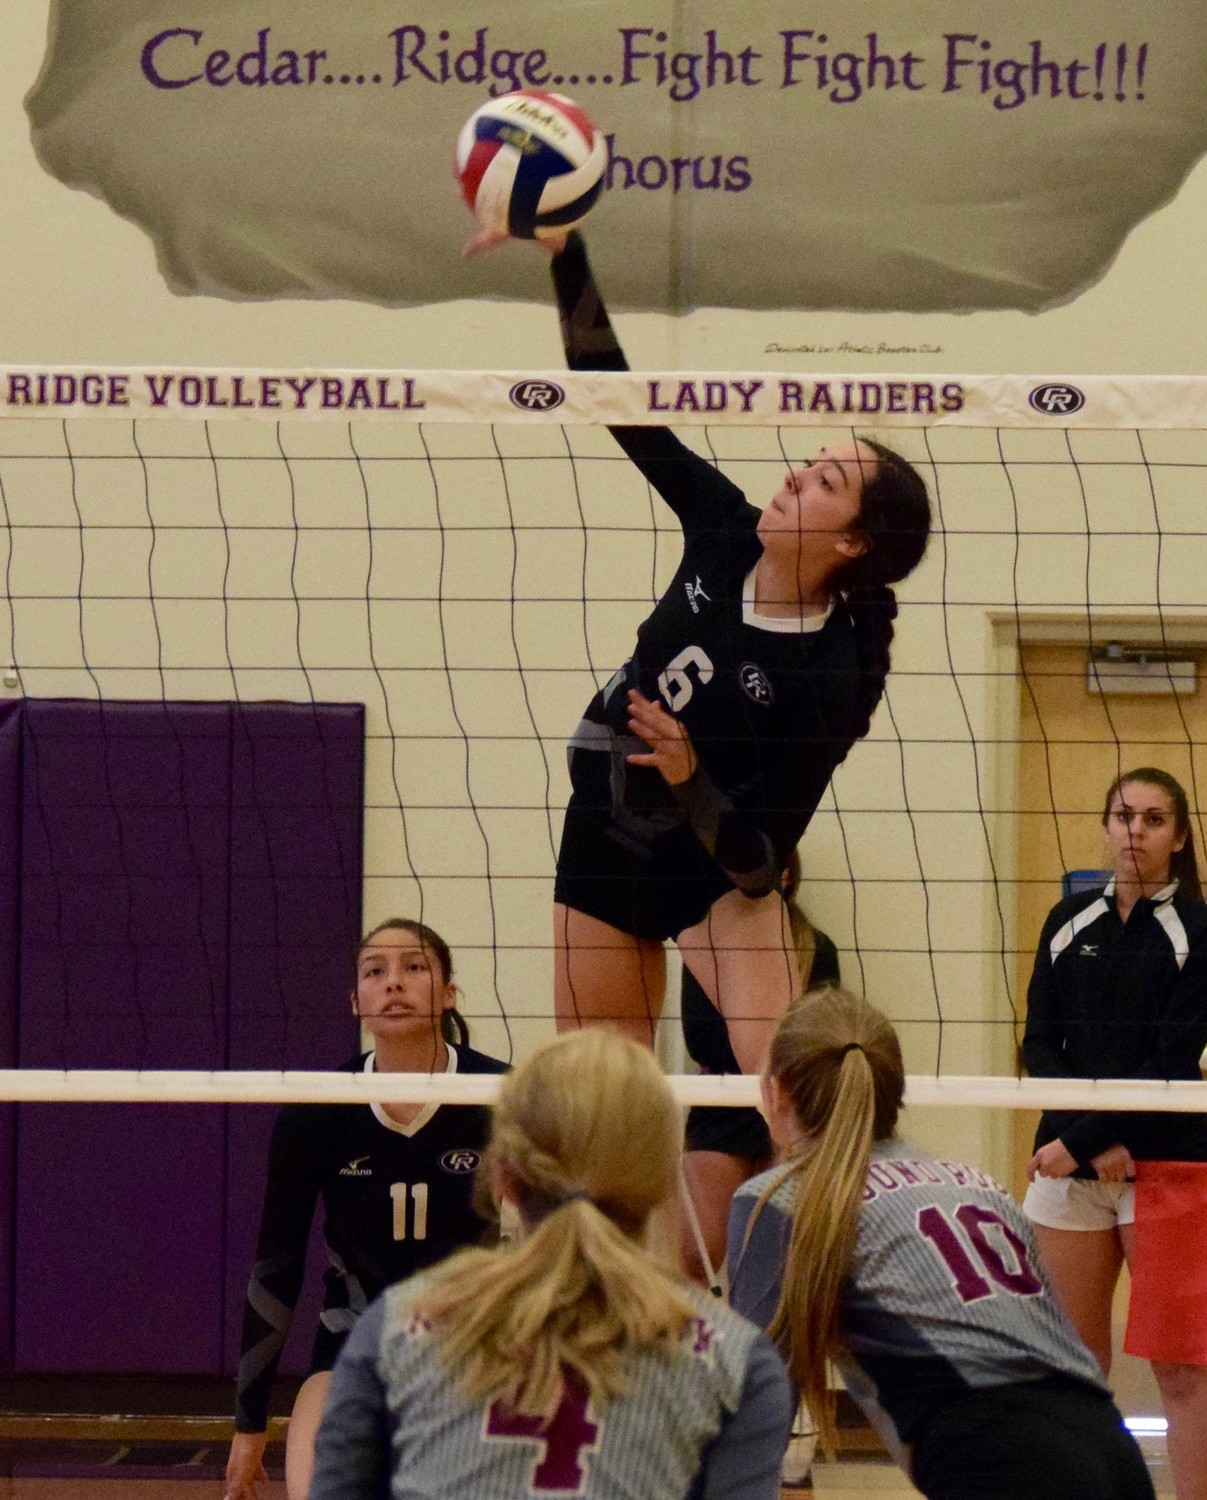 Micayla Harris and Cedar Ridge fell to Round Rock 3-0 (25-22, 25-23, 25-23) in the first game of district 13-6A play on Tuesday night.